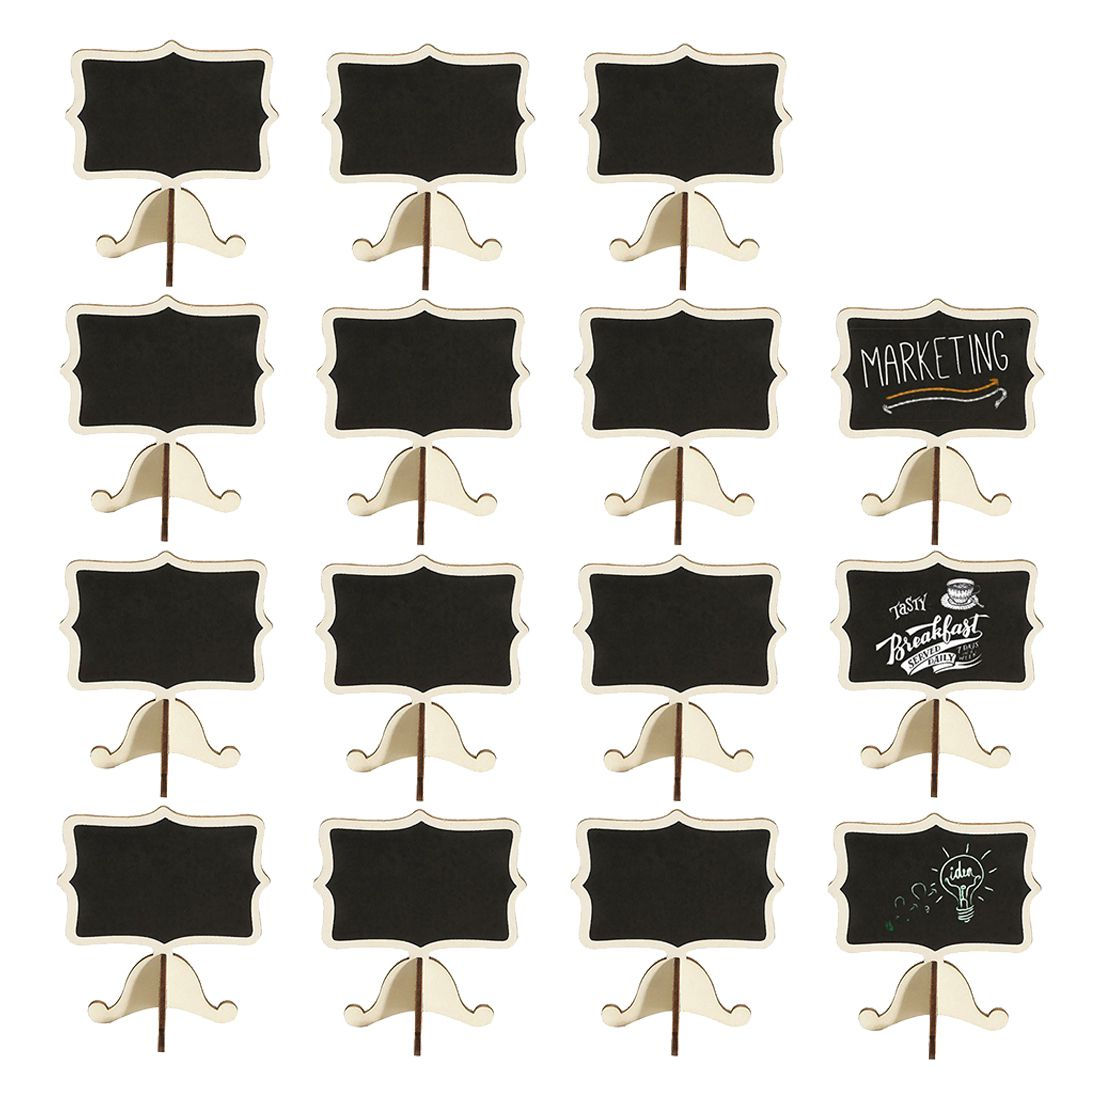 15 Pack Mini Chalkboards Place Cards with Easel Stand - Wood Rectangle Small Chalkboard Signs for Wedding, Birthday Parties, T